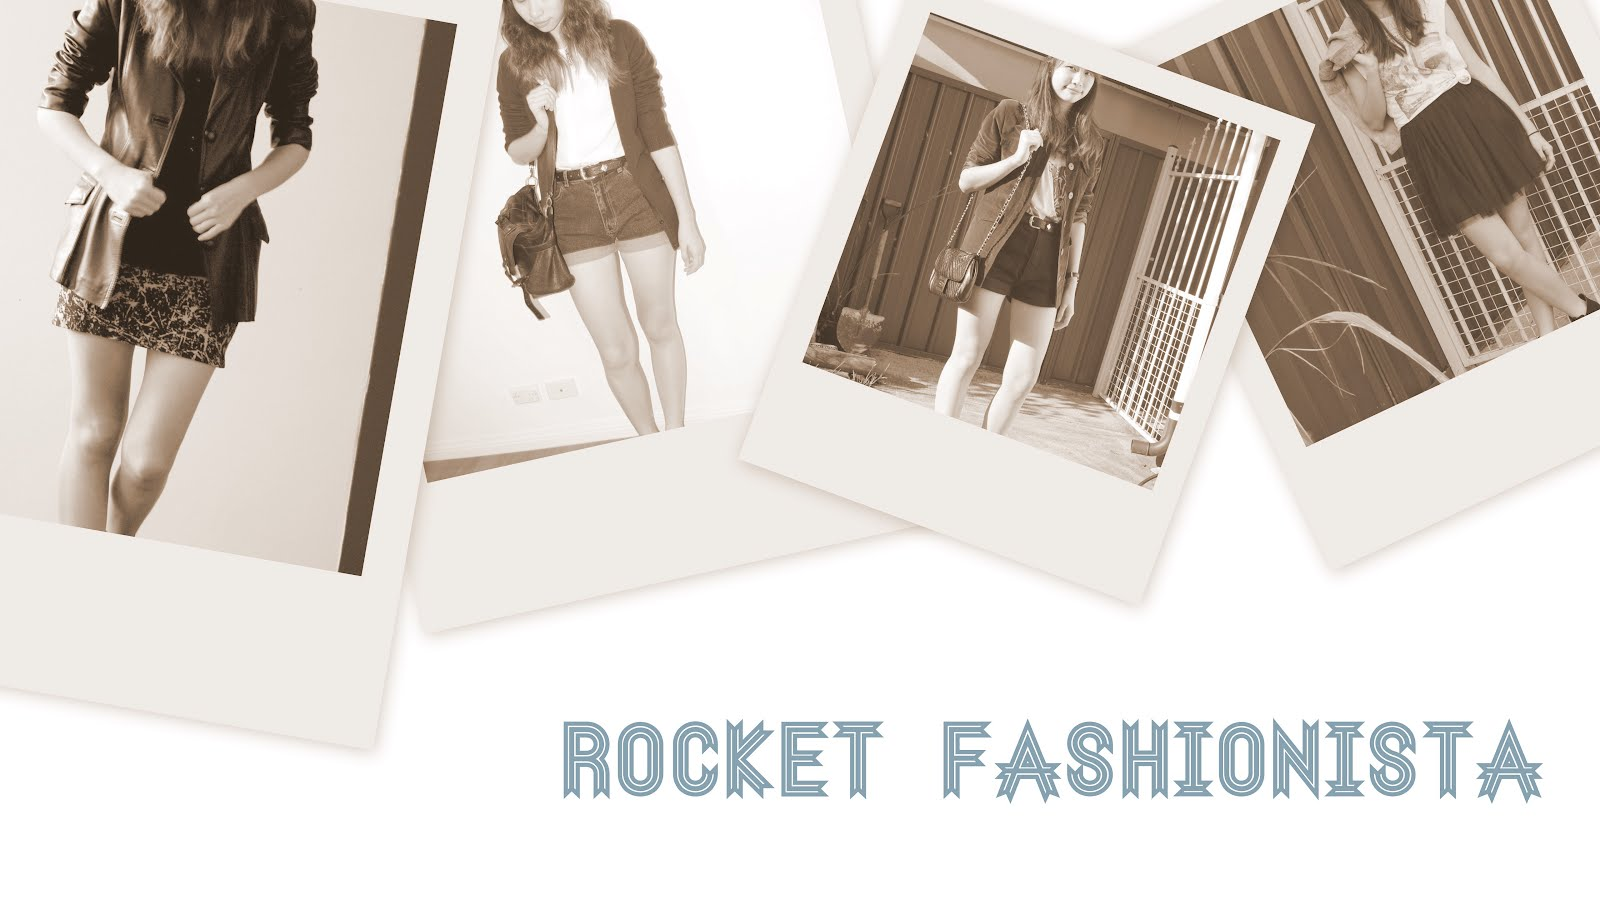 Rocket Fashionista